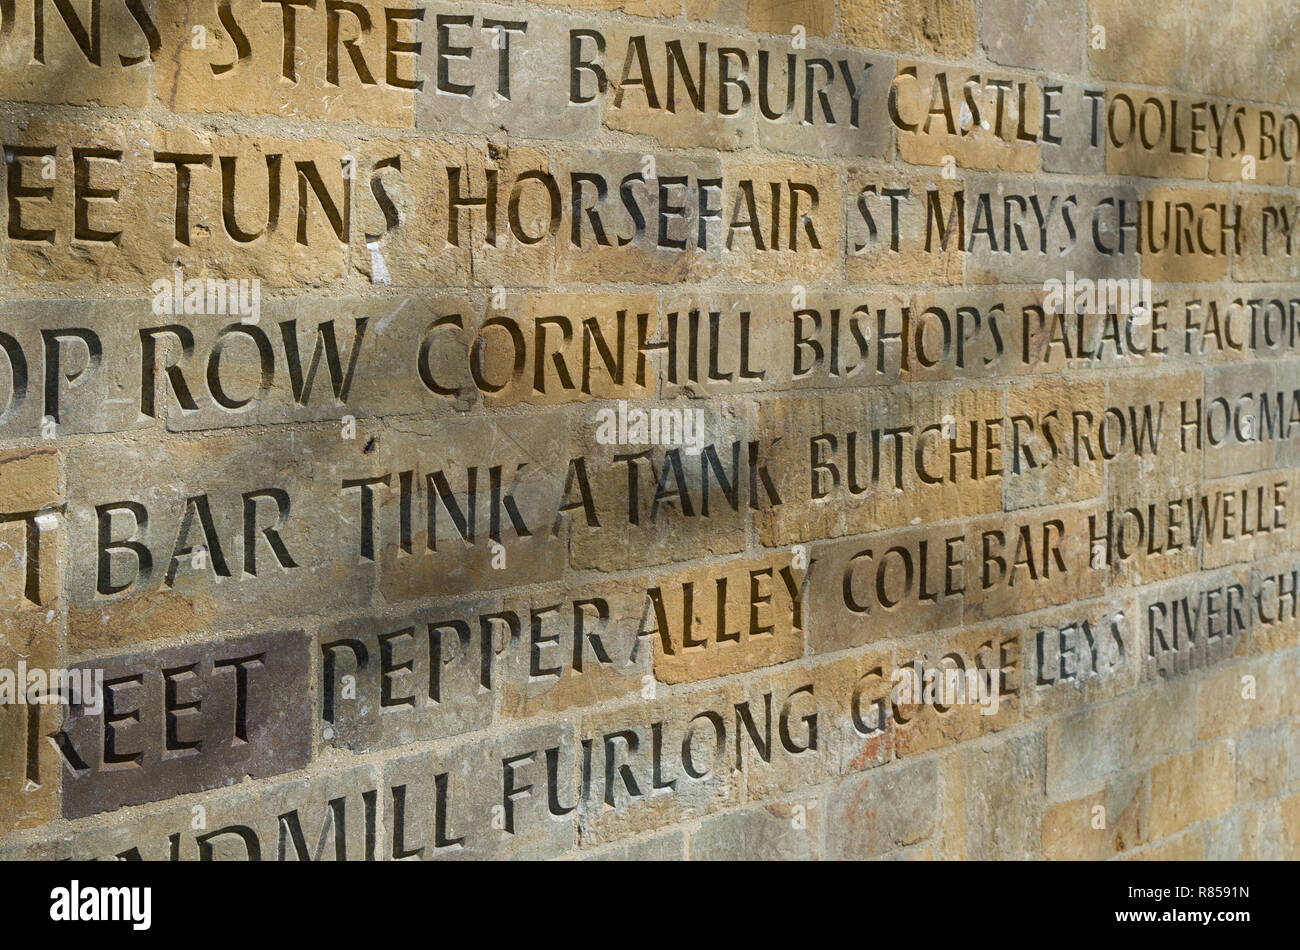 Carved inscriptions on the exterior wall of refurbished public conveniences, Banbury, UK;  listing the various streets within the town. - Stock Image